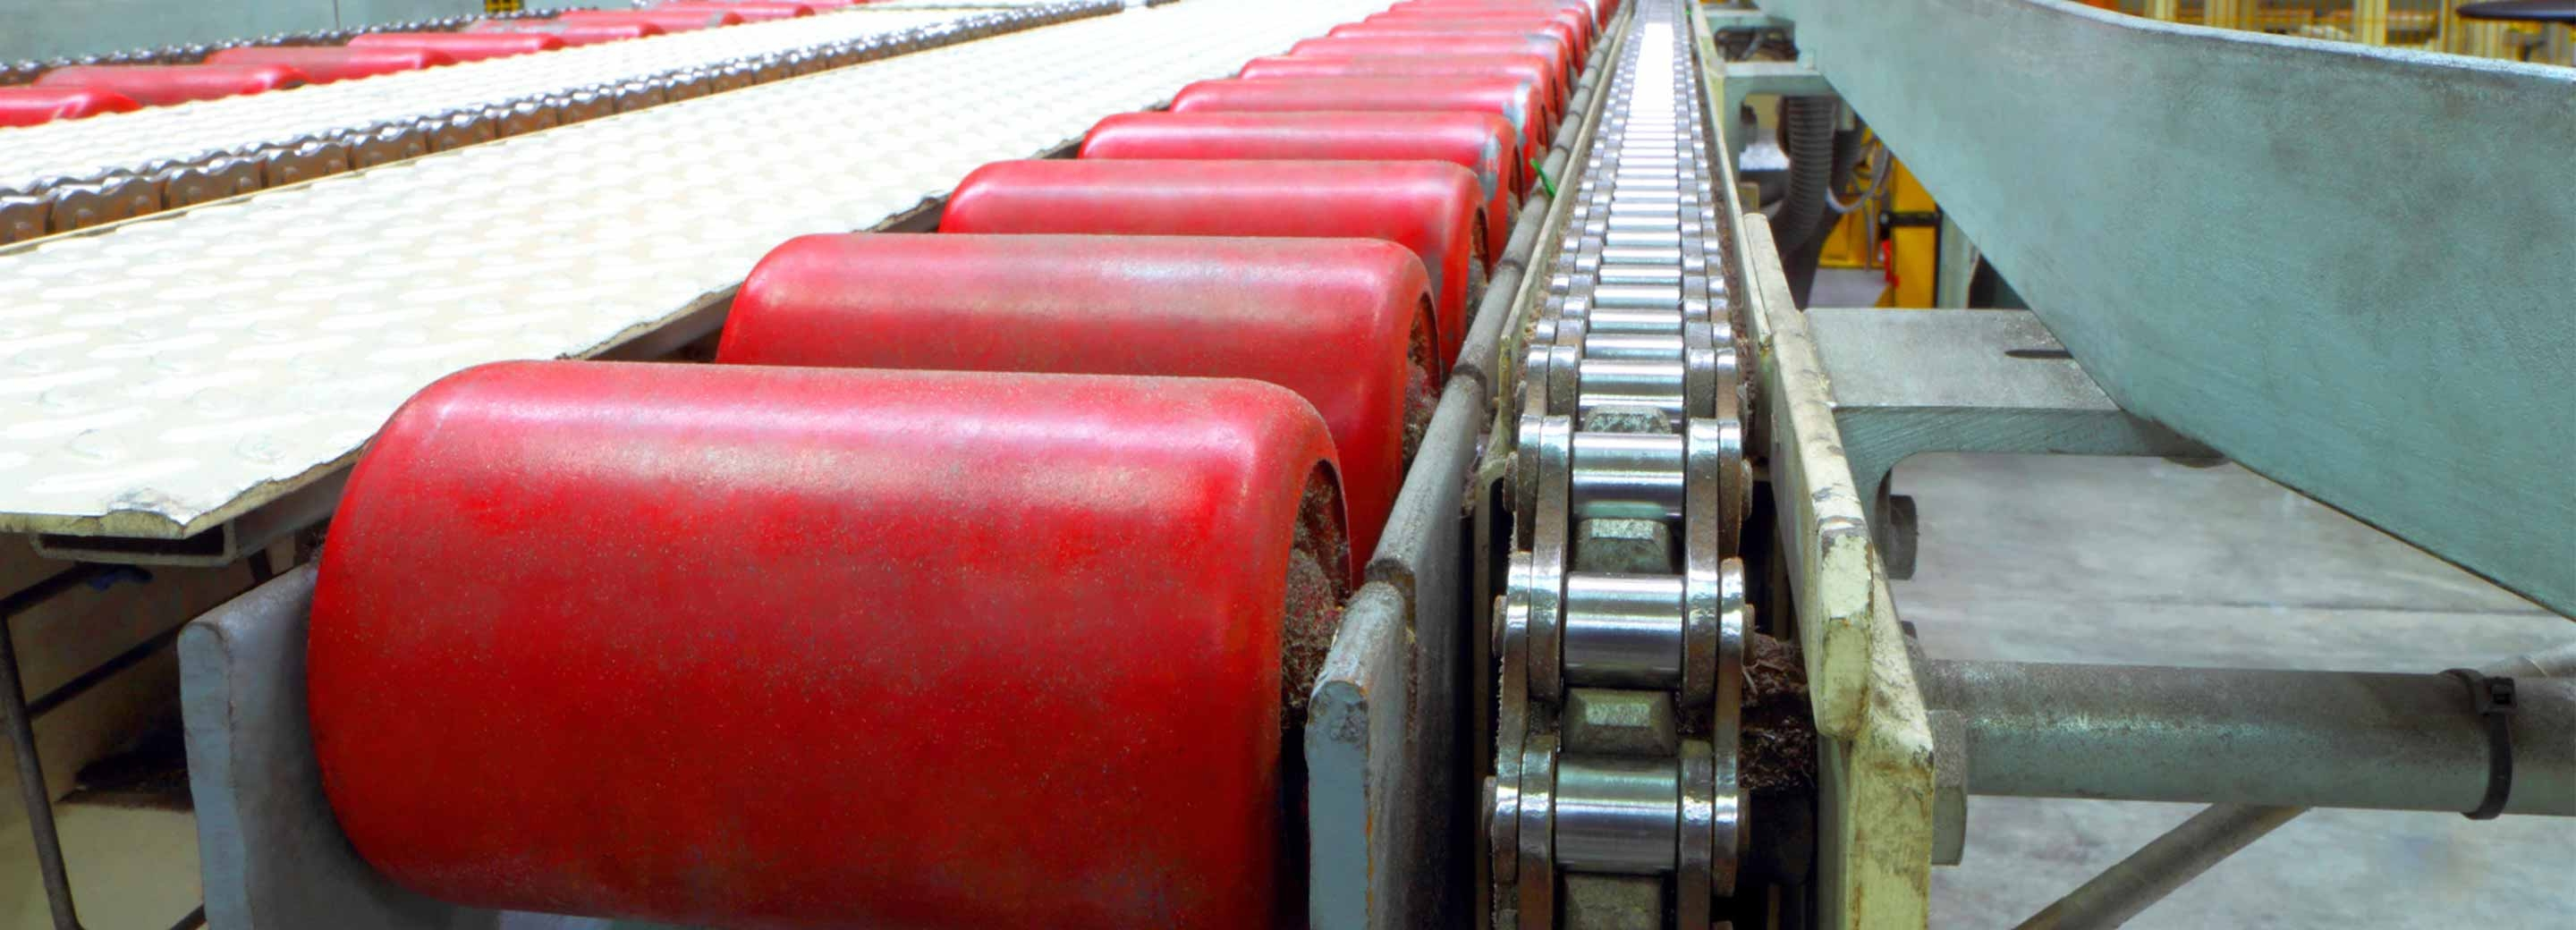 red rubber rollers